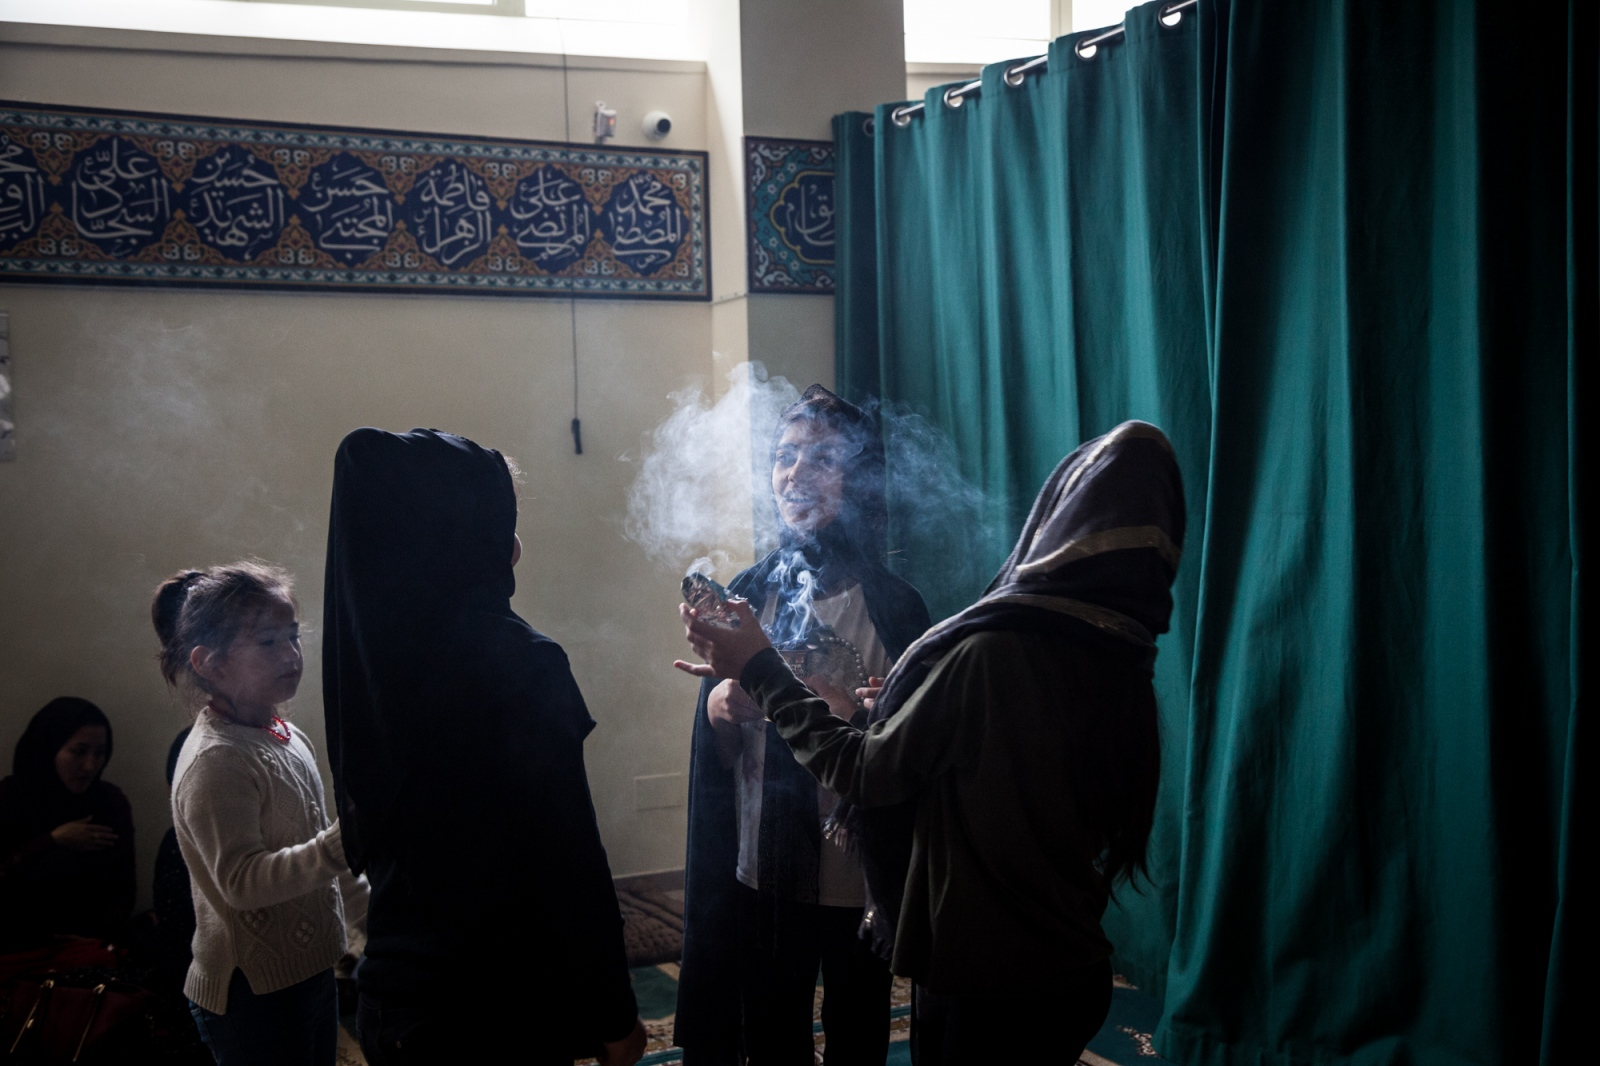 Oct. 1, 2017 -  Girls play with incense at the Islamic Centre Imam Mahdi, where about two hundred Shiia Muslims have gathered to celebrate the day of Ashura. This mosque, located in the eastern neighborhood of Furio Camillo, is the only Shia mosque in Rome.